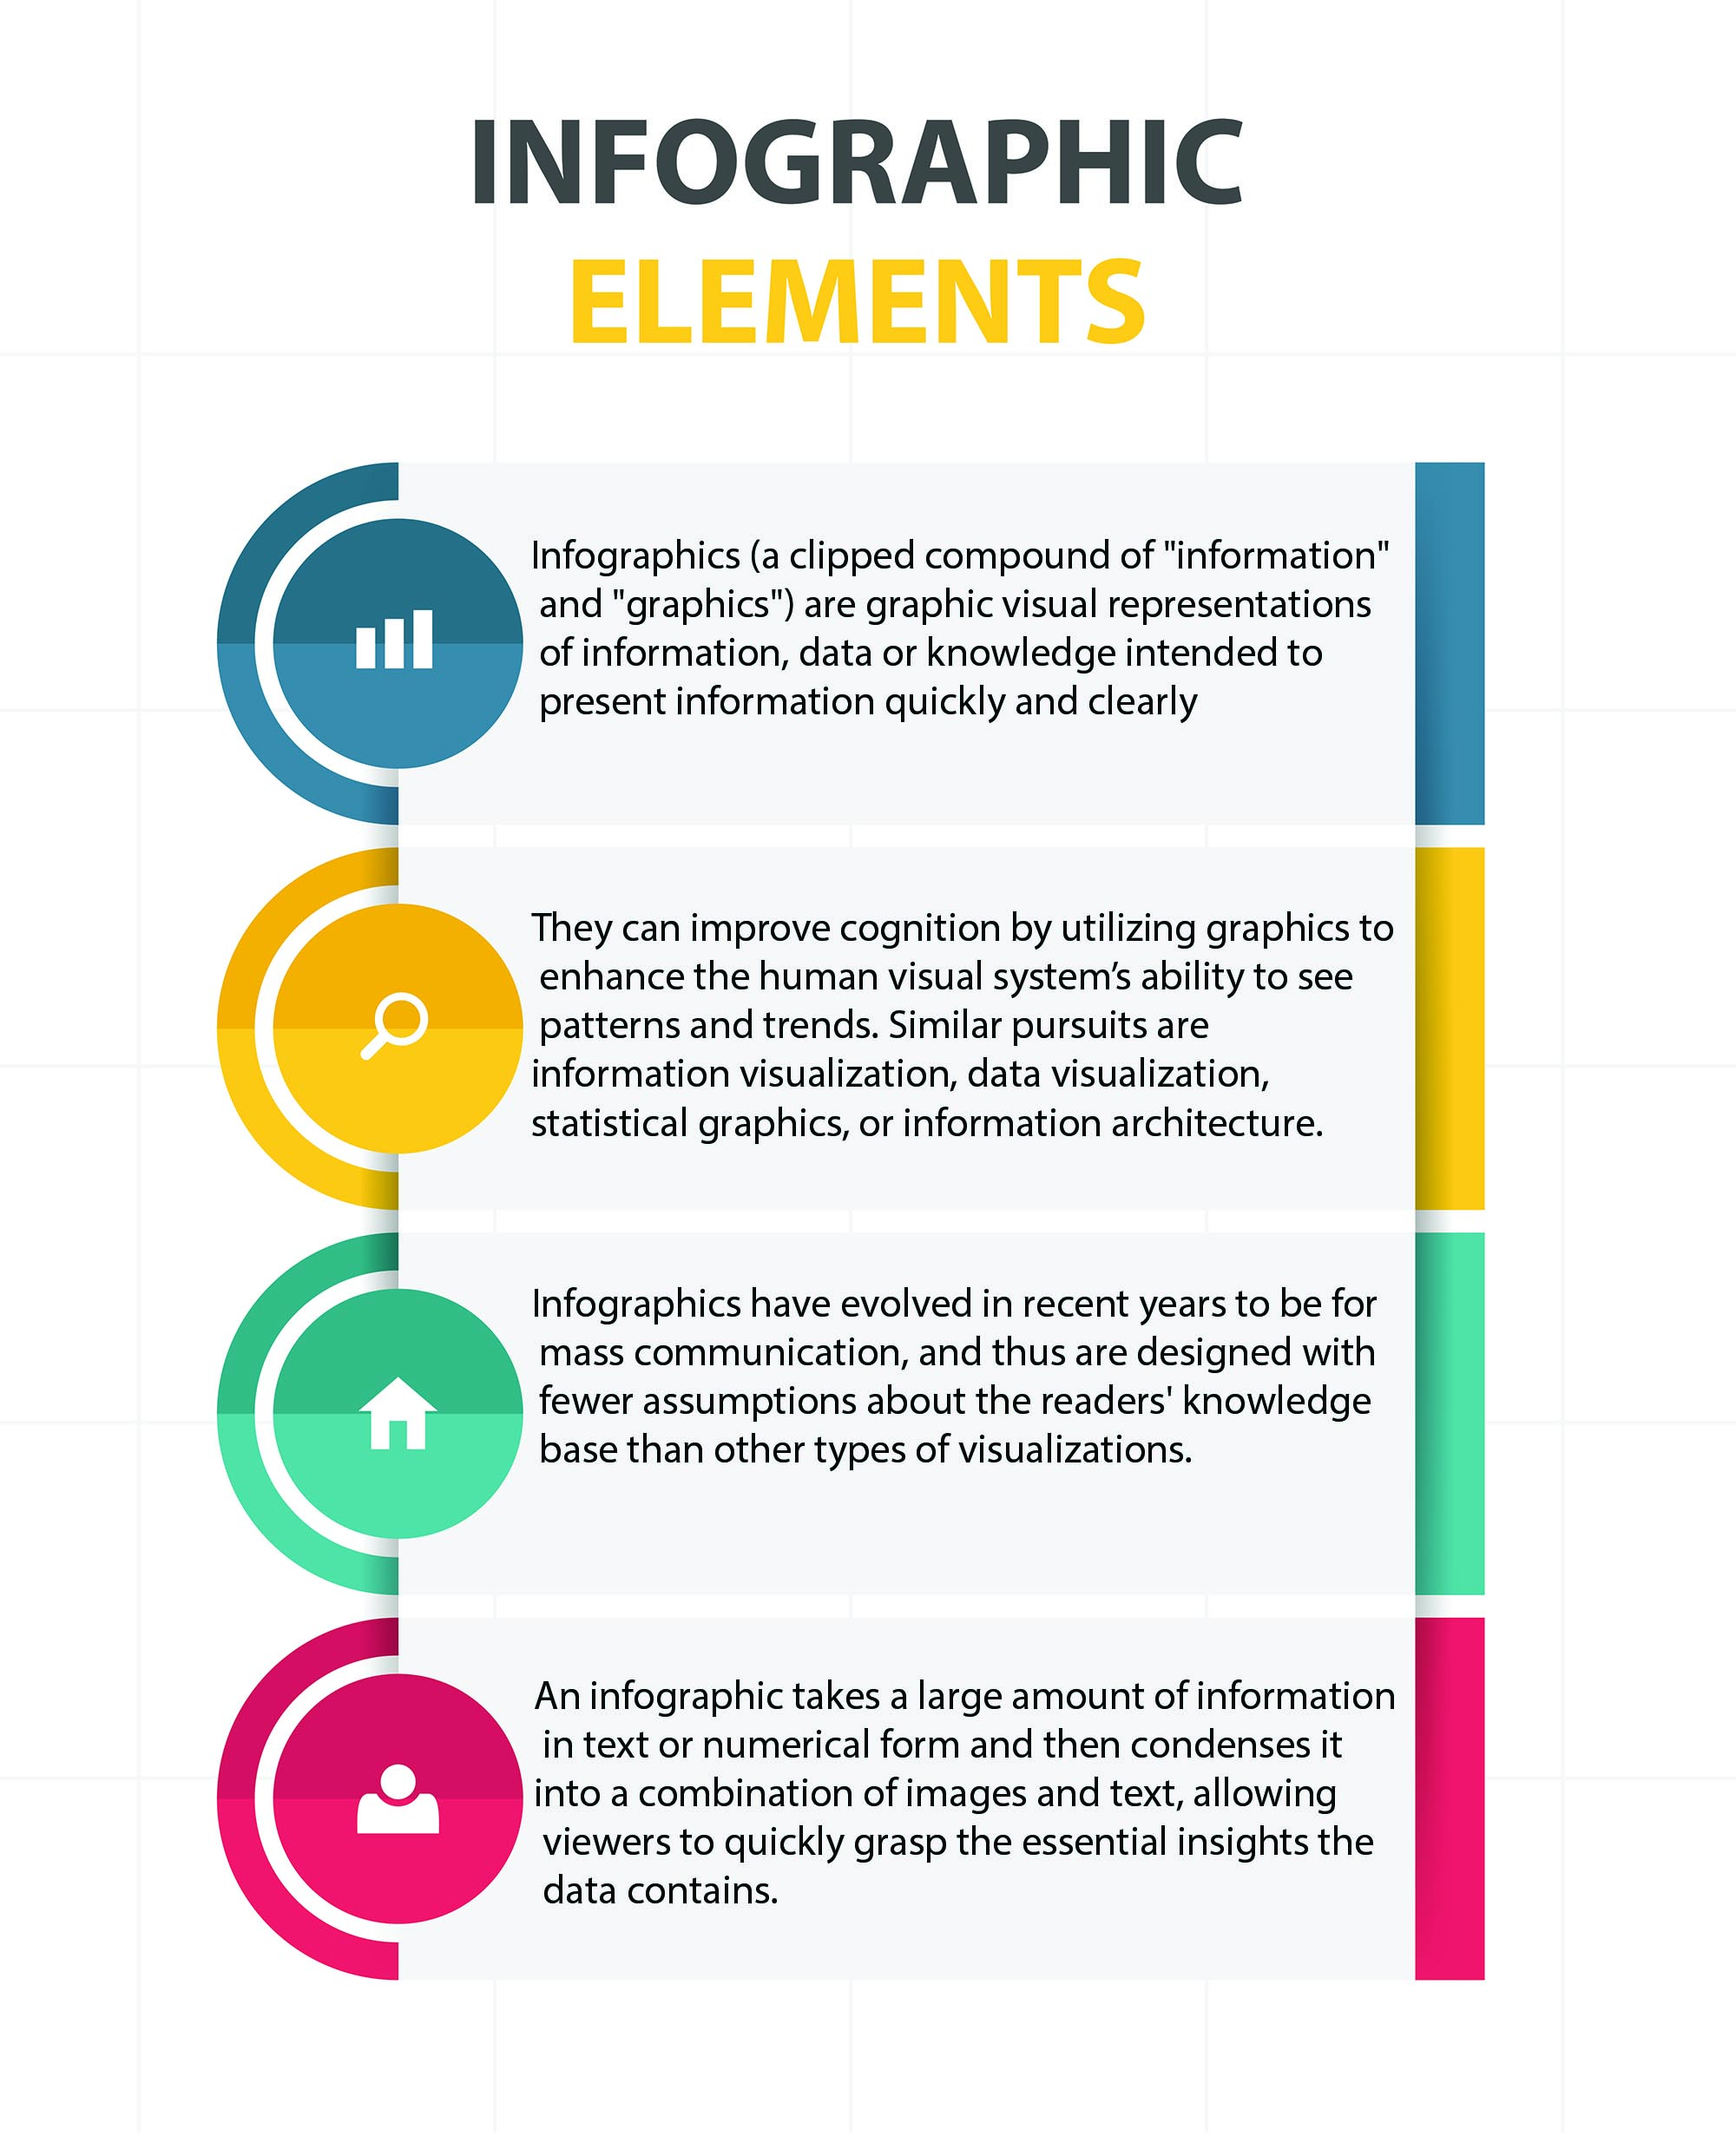 Infographics Elements Explained